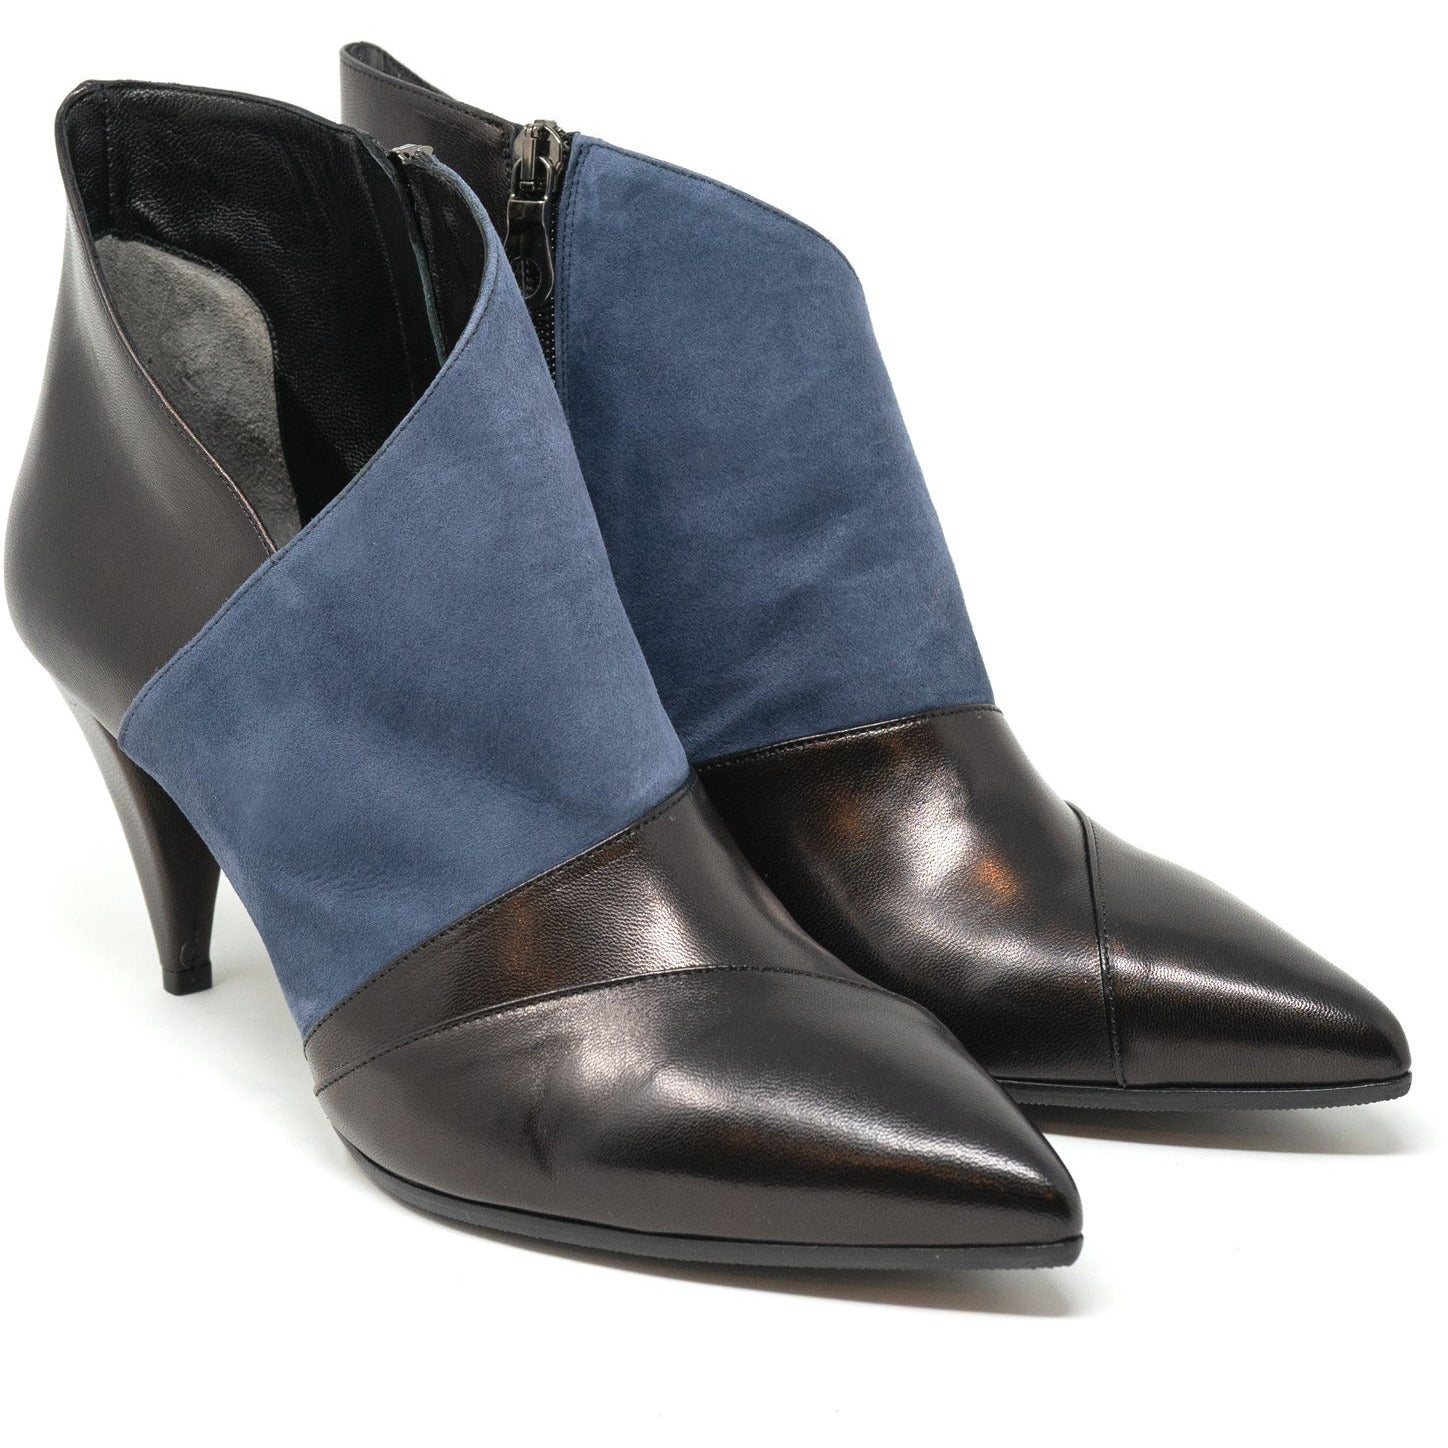 DDL4630 T70 Women Booties - Jennifer Tattanelli Signature Collection